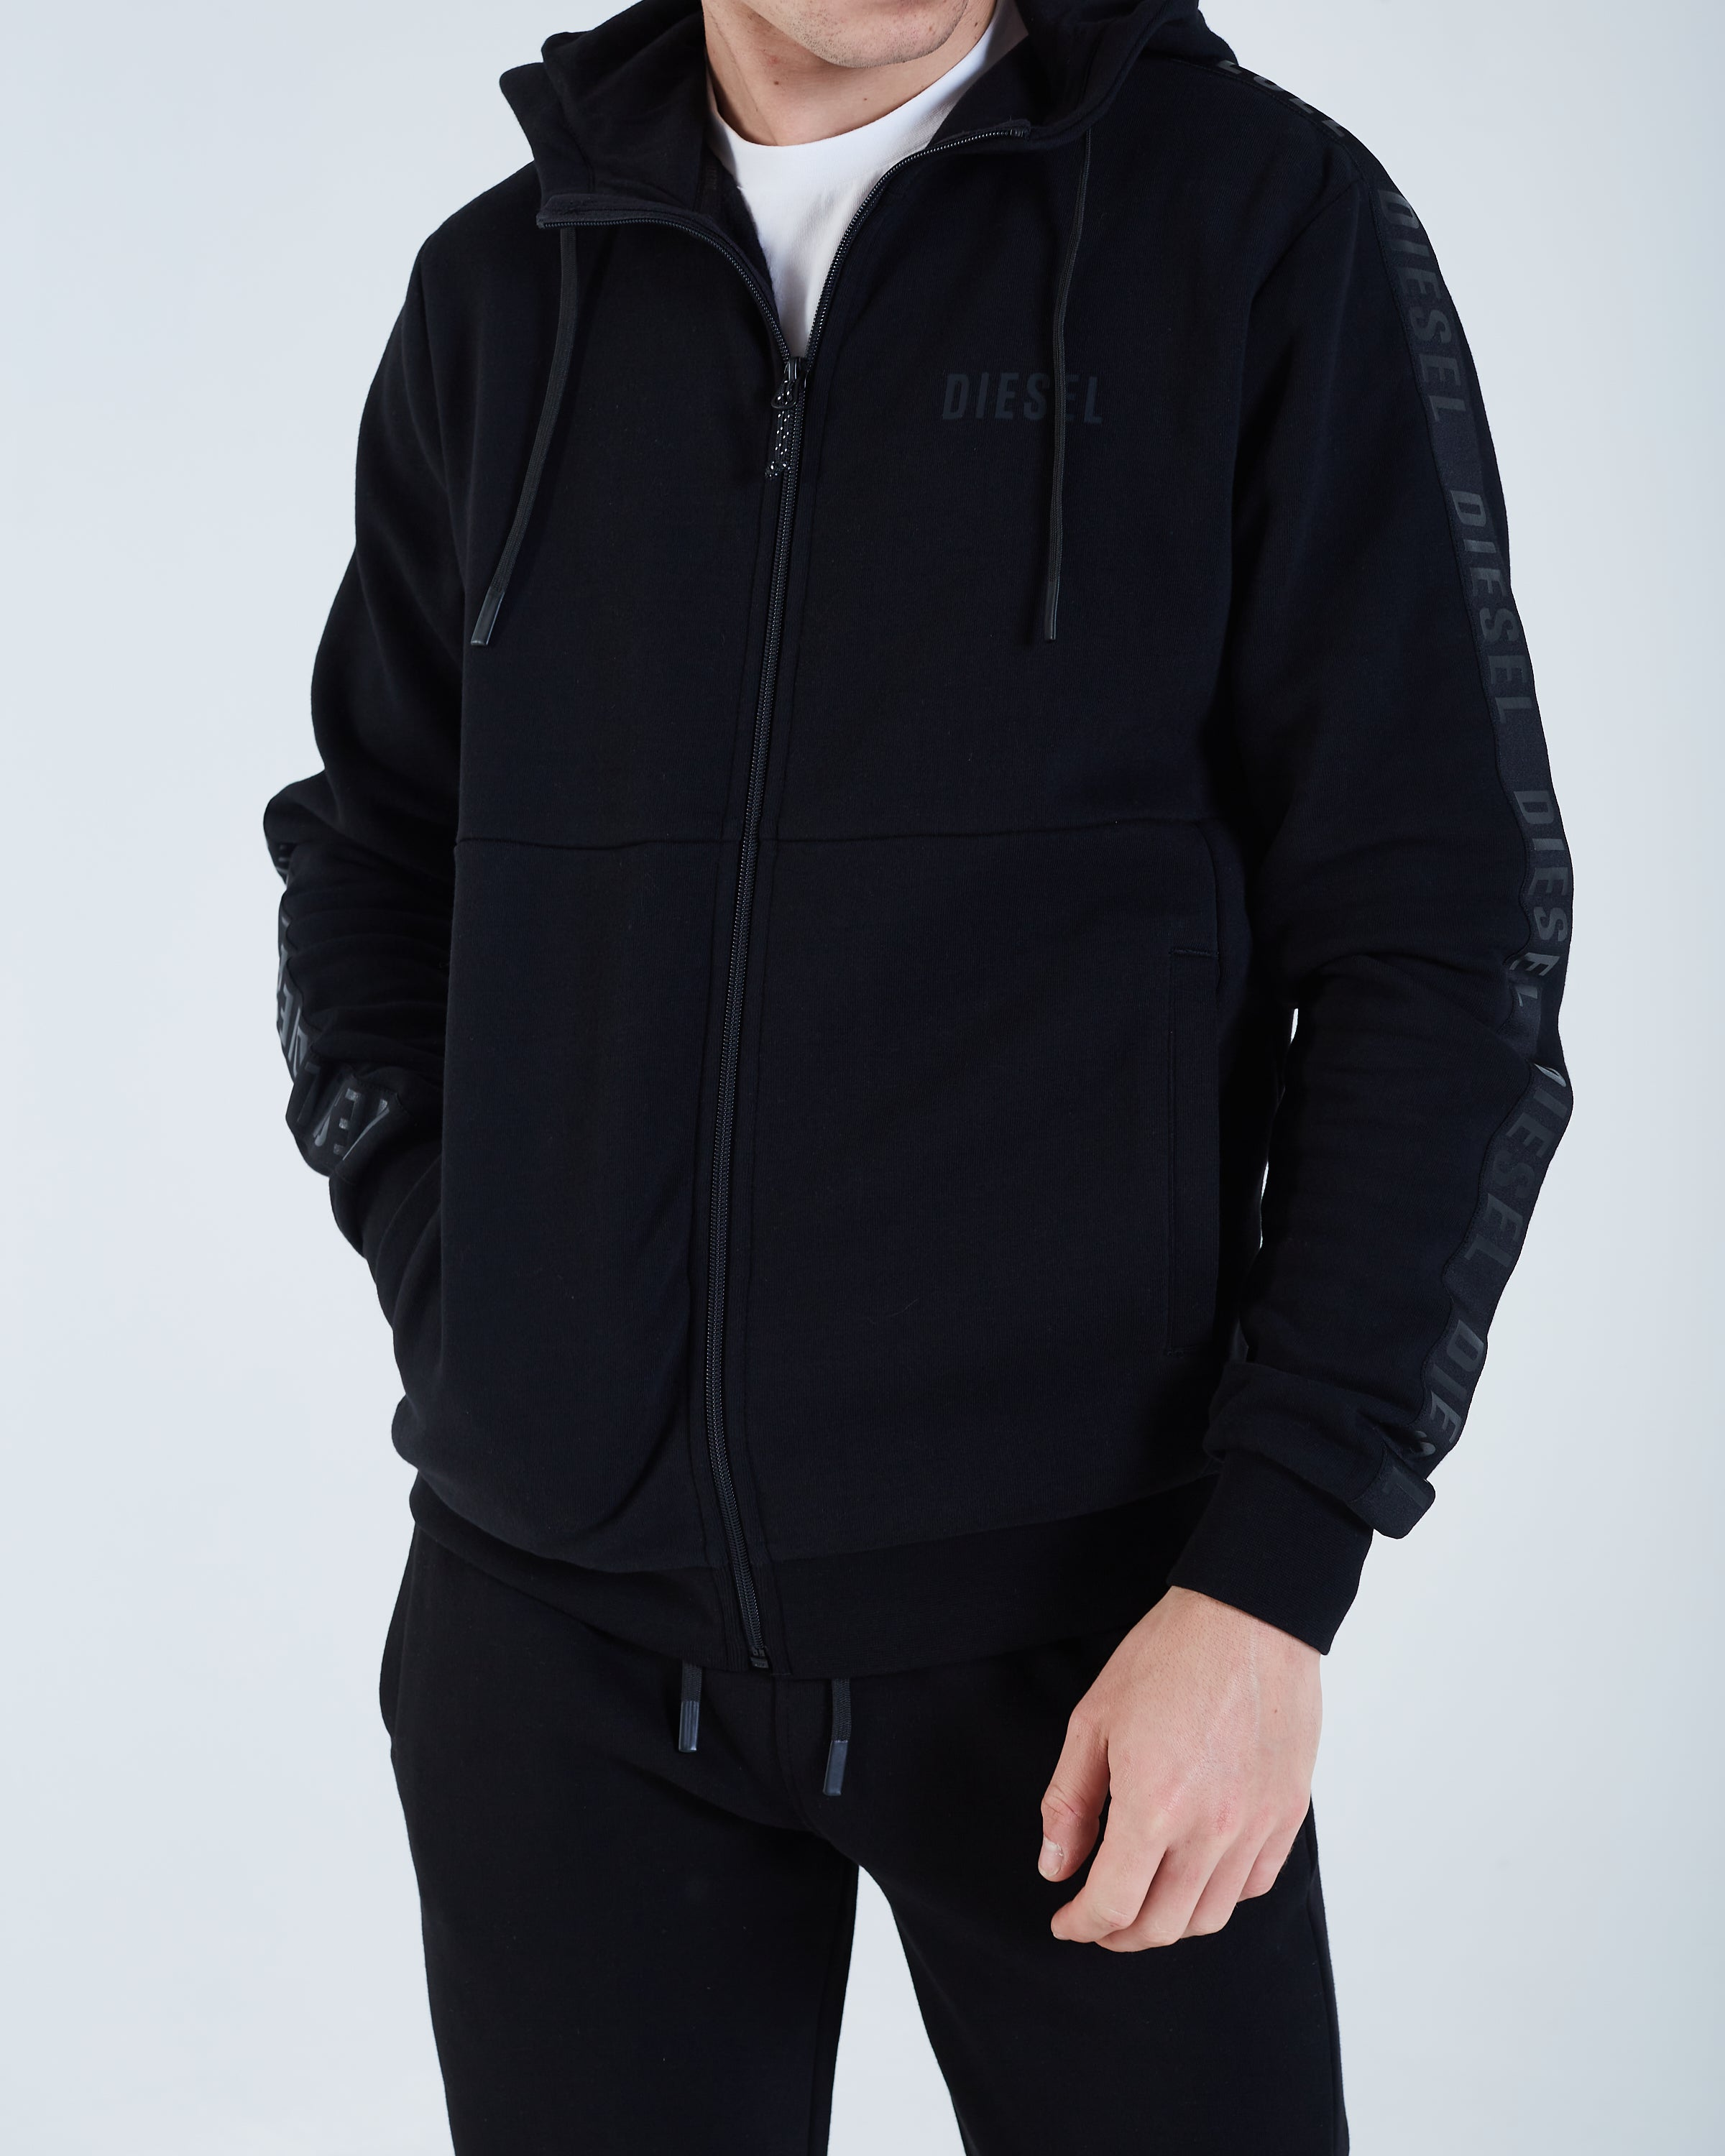 Domenico Zipper Black